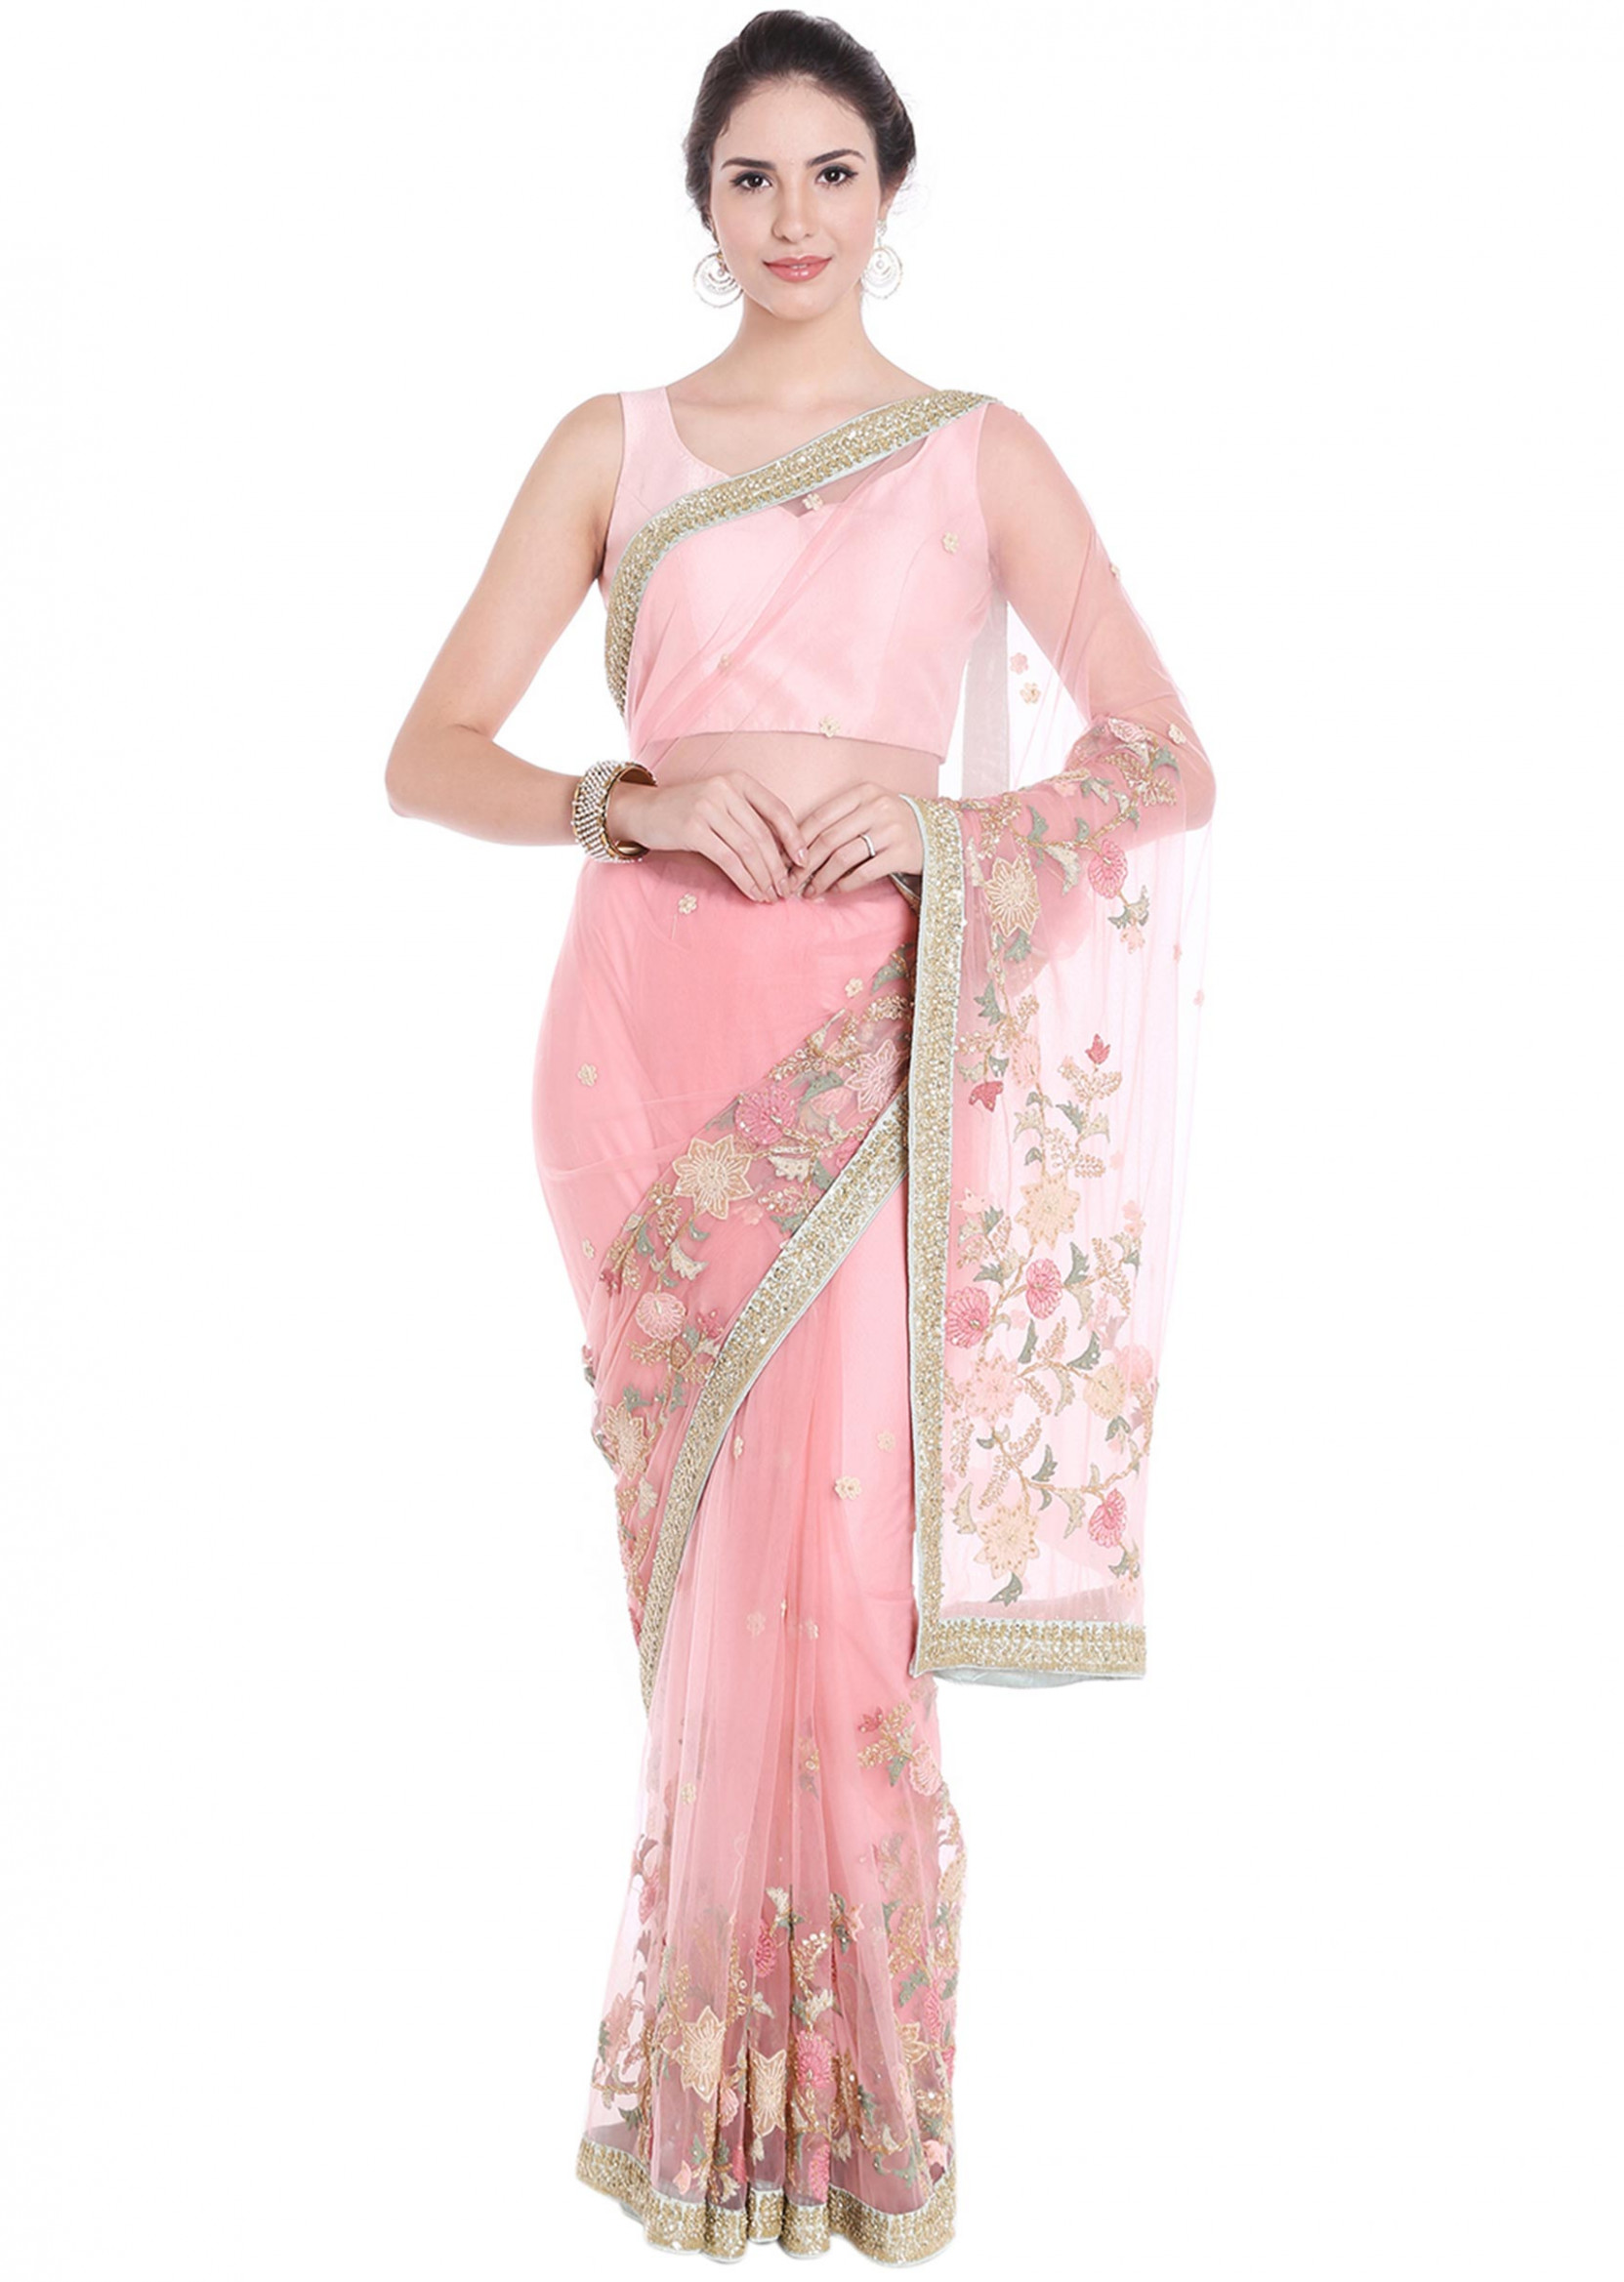 Baby pink net saree adorn in thread floral jaal motif